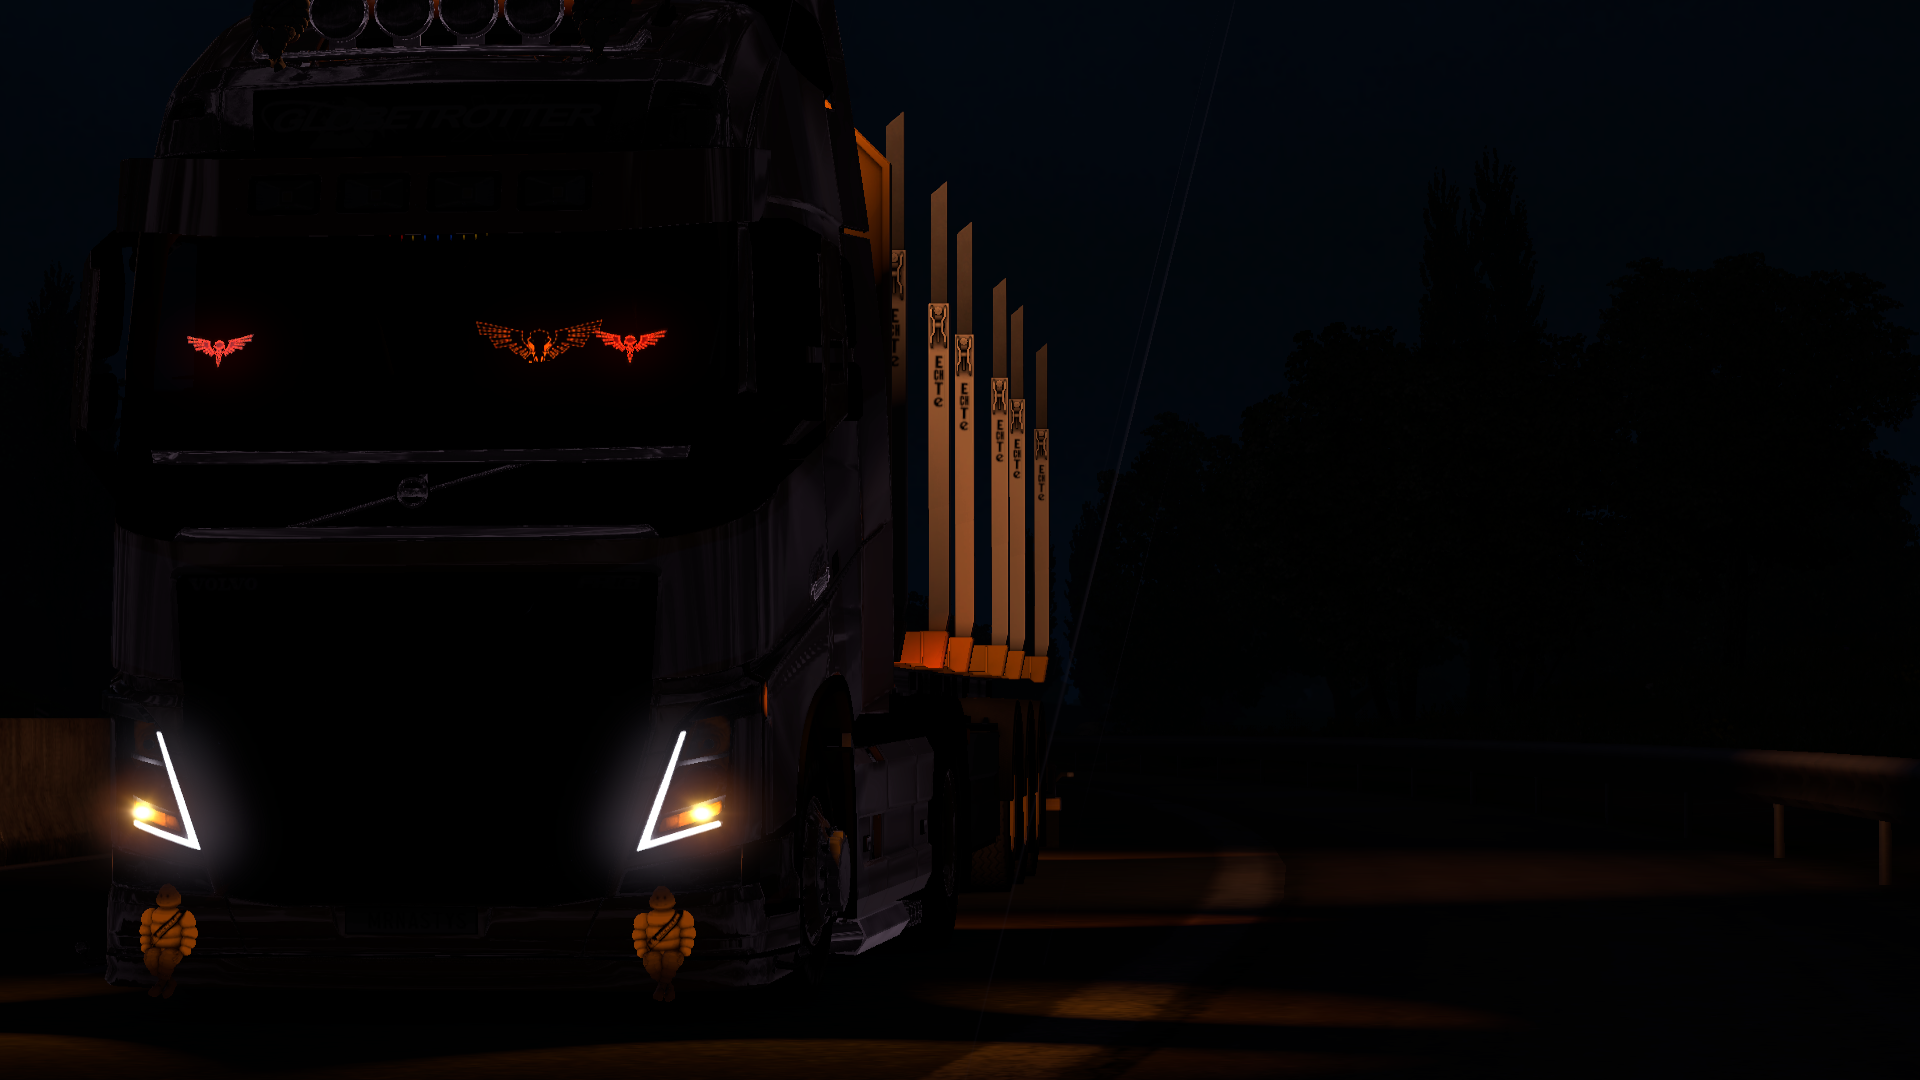 ets2_20190712_021344_00.png